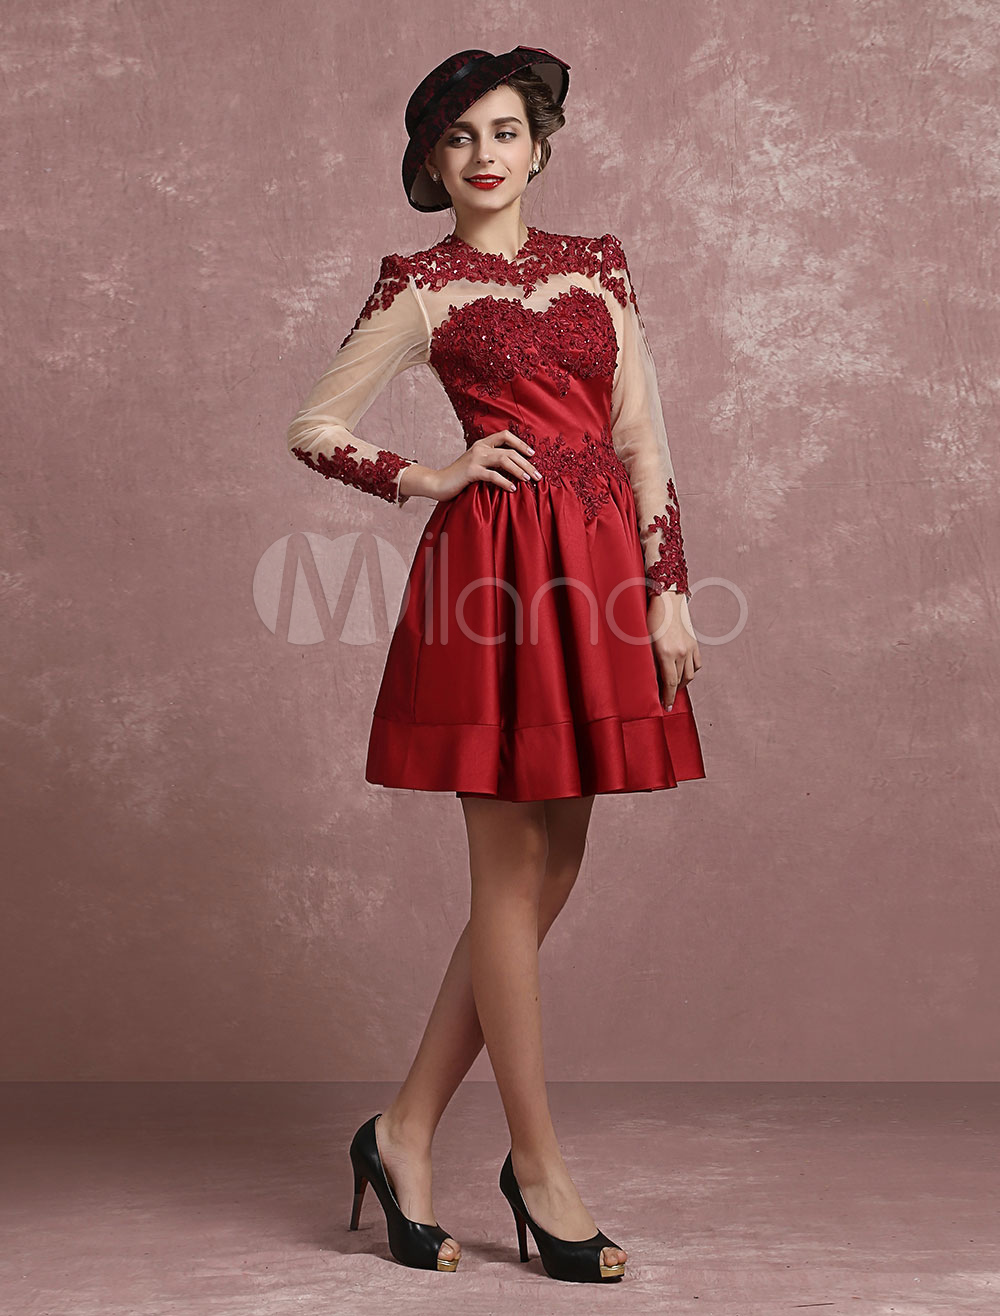 Buy Satin Homecoming Dress Vintage Illusion Lace Applique Beaded Cocktail Dress Burgundy Jewel Long Sleeve Pleated A Line Short Party Dress for $110.49 in Milanoo store